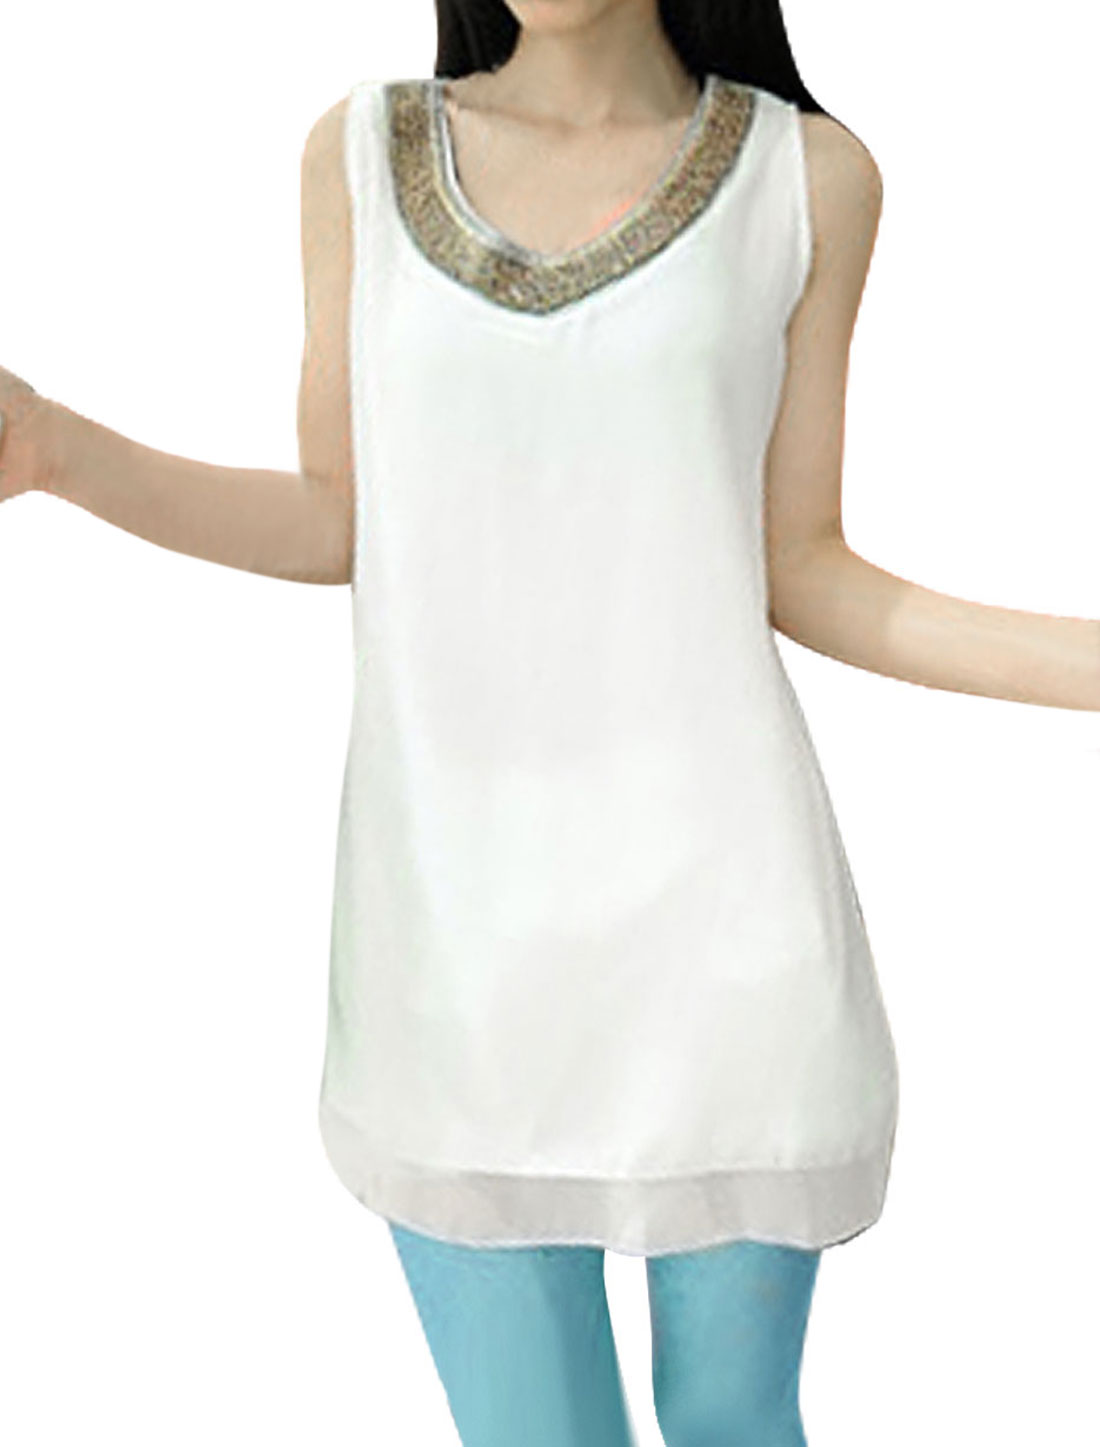 Women Sleeveless Style Round Neck Pullover Semi Sheer Tunic Shirt White XS